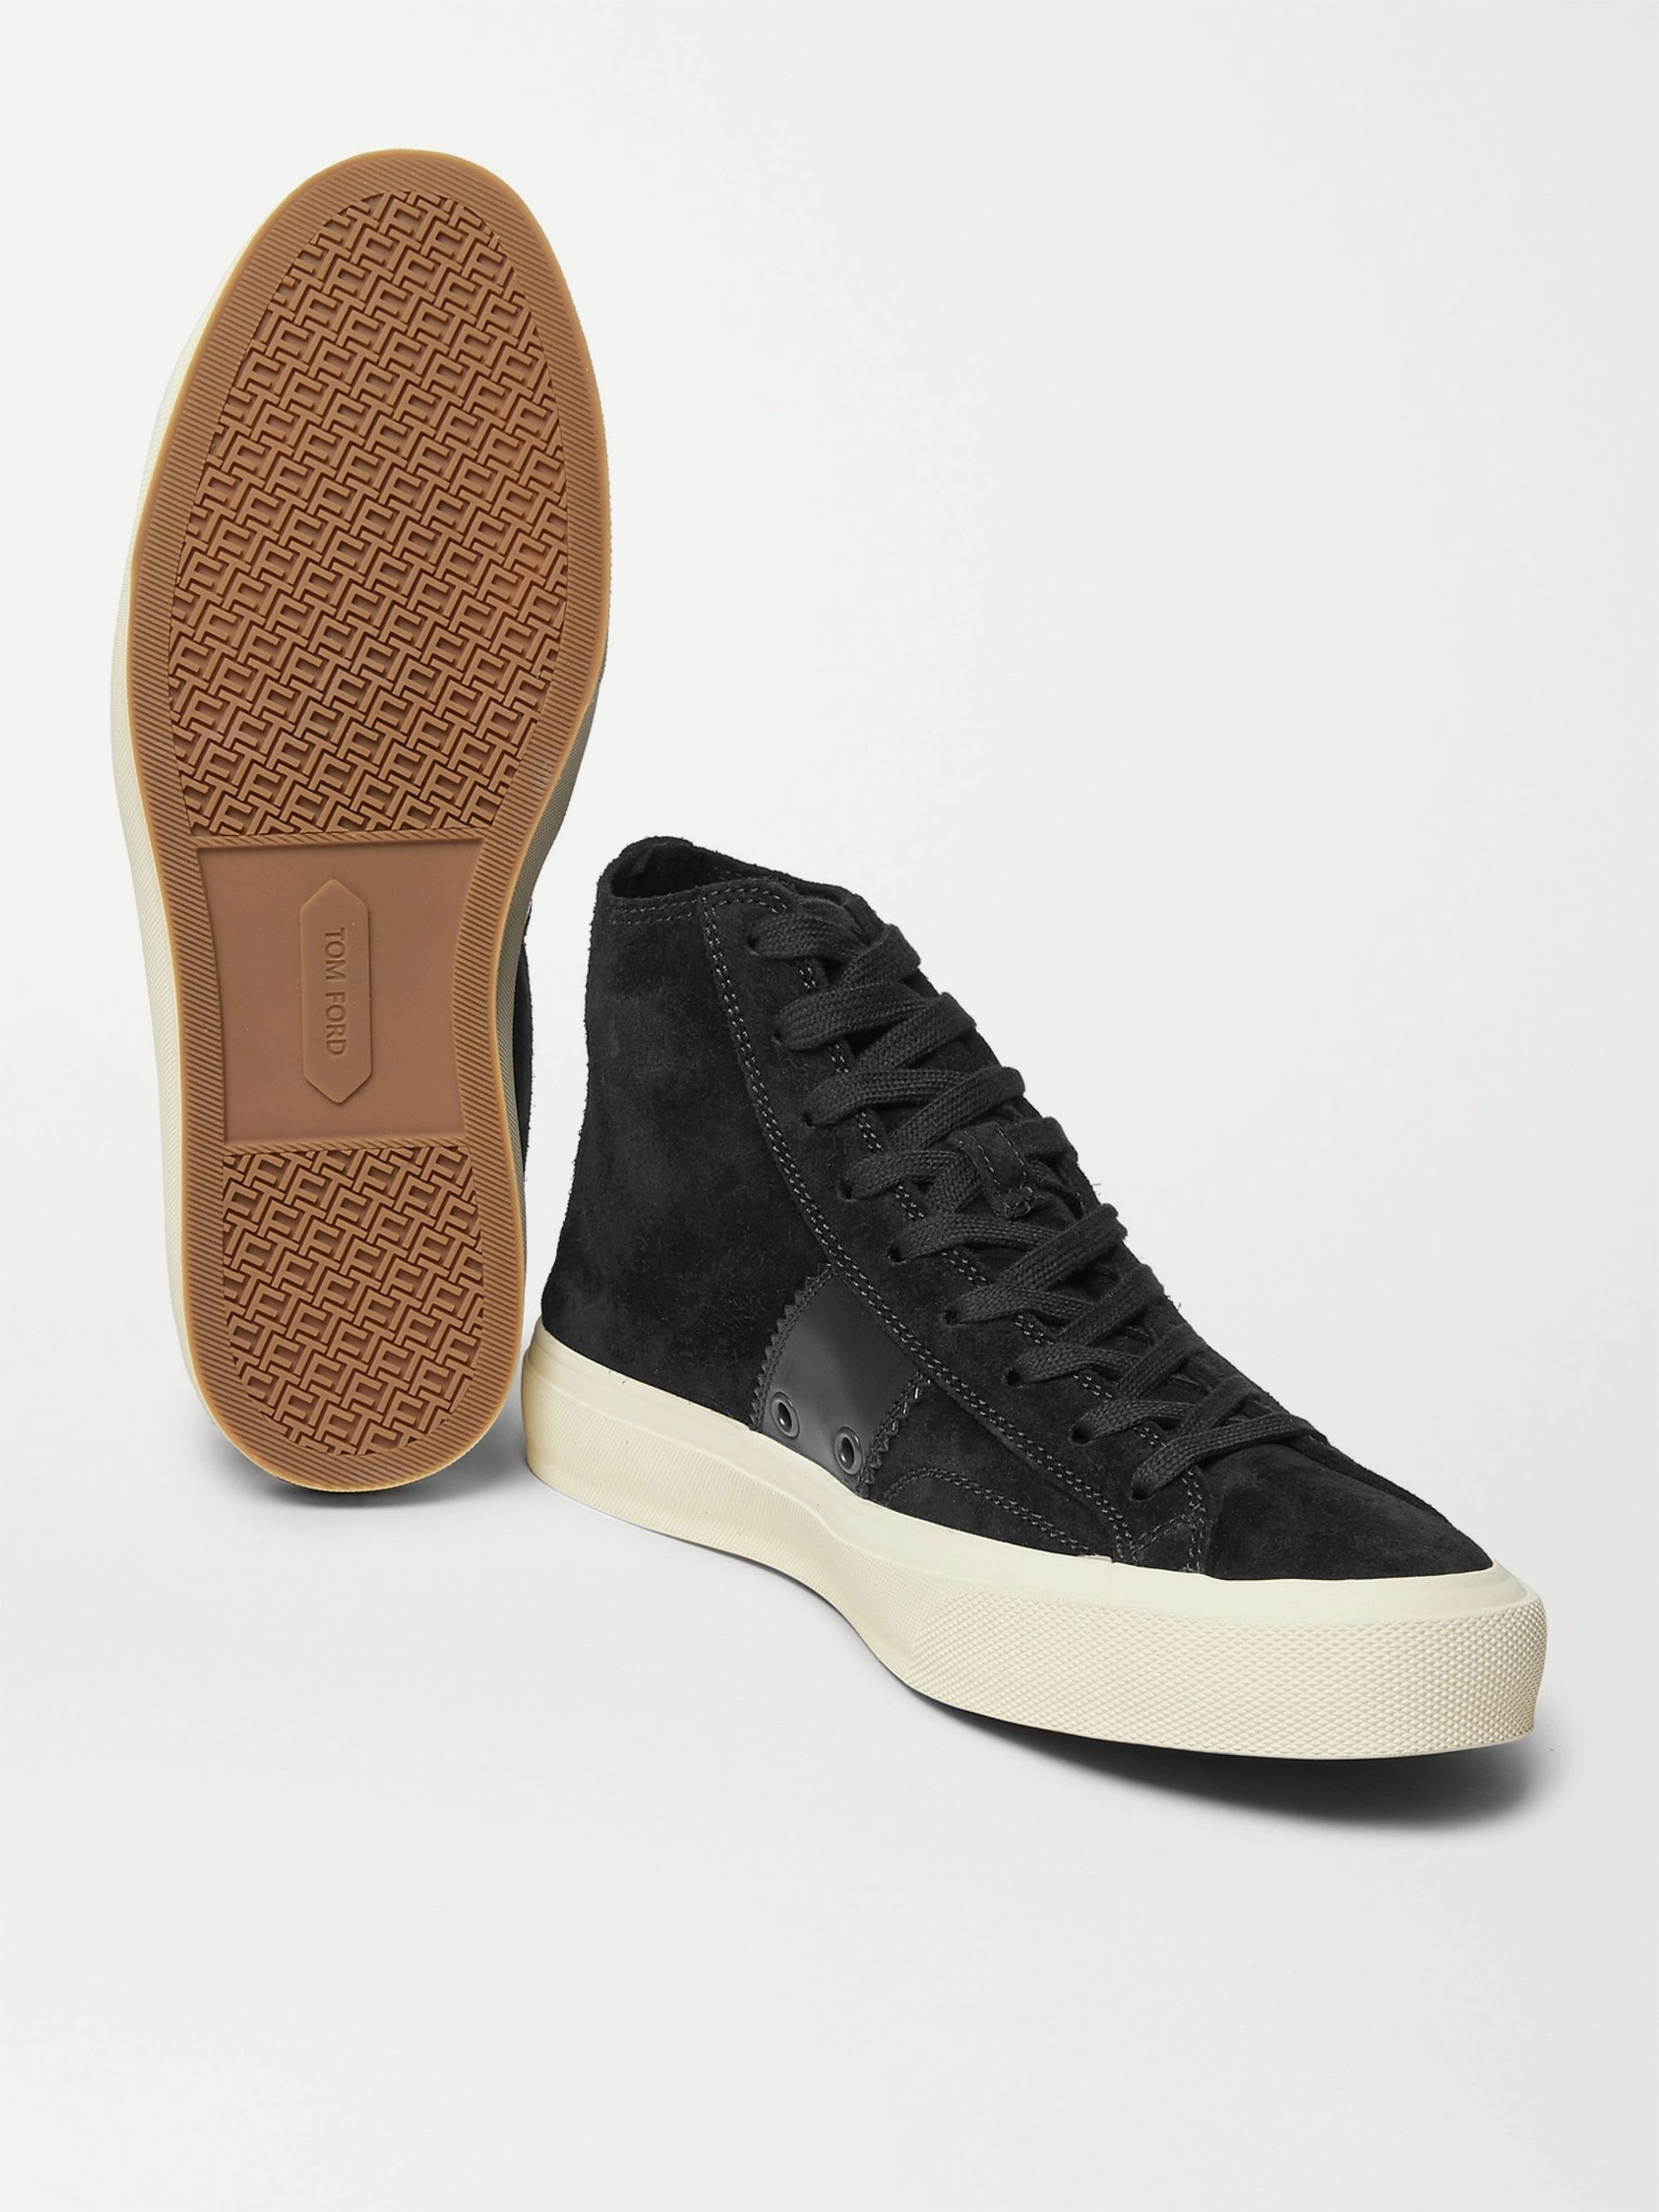 Black Cambridge Leather-trimmed Suede High-top Sneakers | Tom Ford